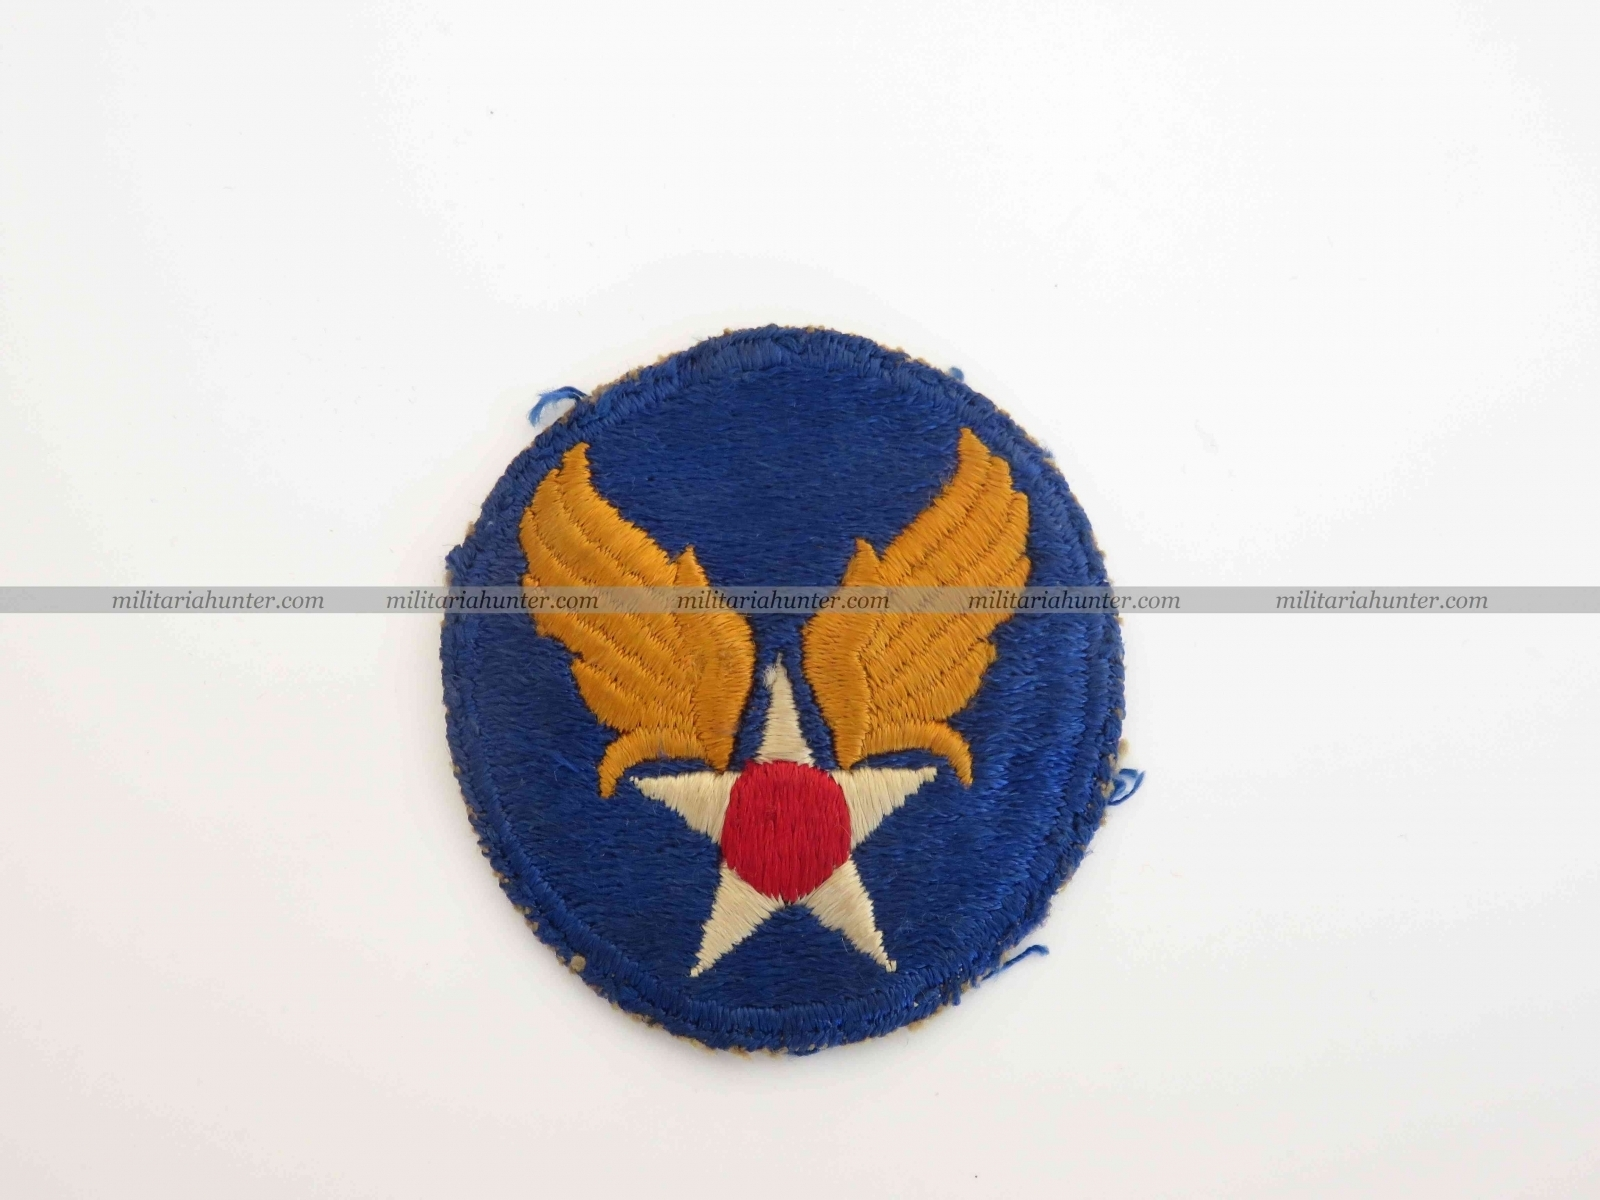 militaria : Original ww2 Army Air Force badge cut edge